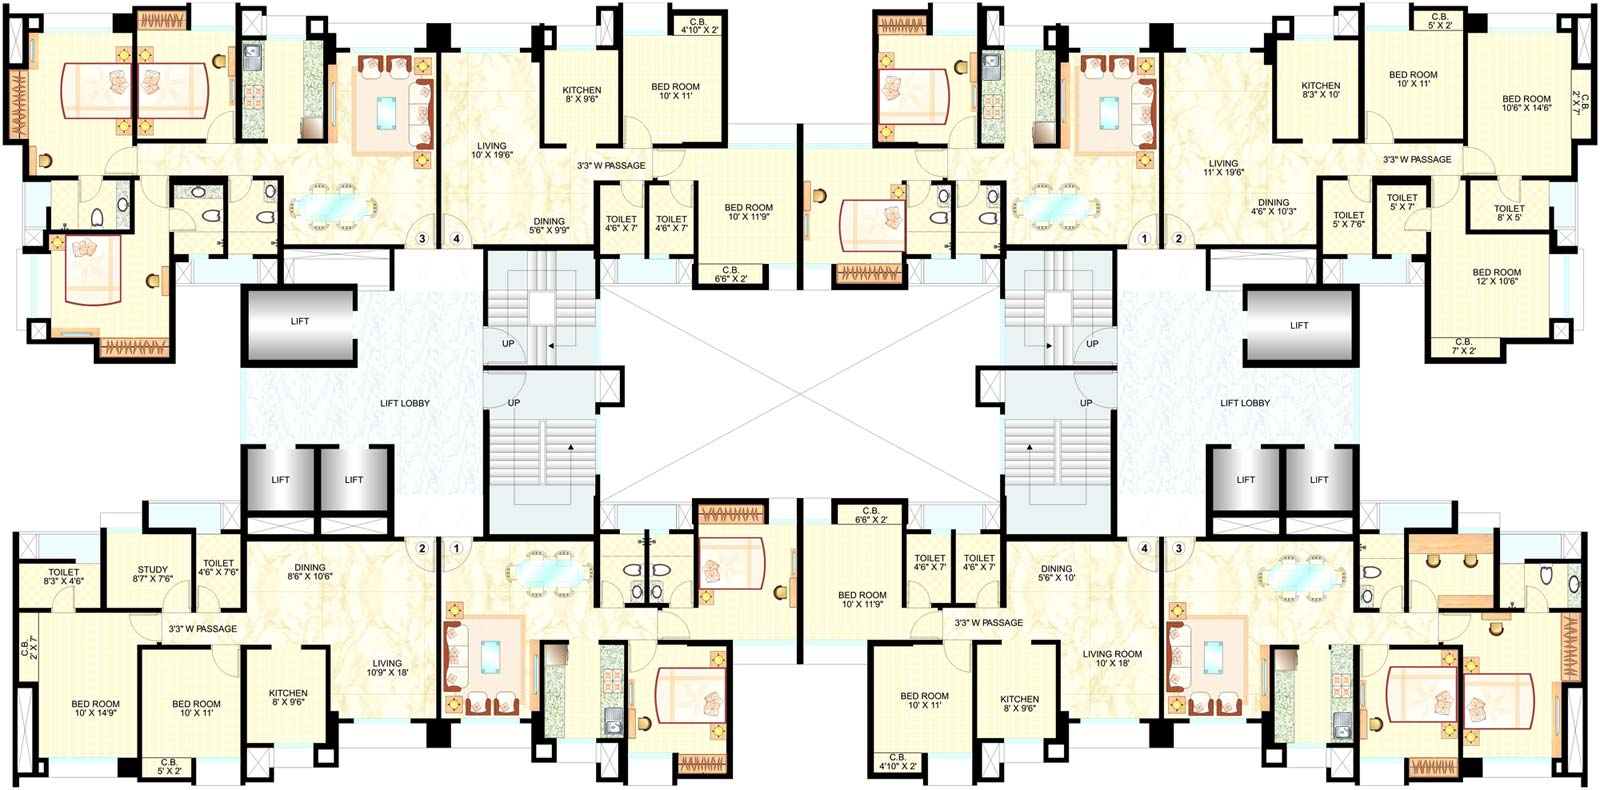 2 Bedroom Apartment Building Floor Plans 2 Bedroom Apartment Building Floor  Plans Beautiful Two Inside